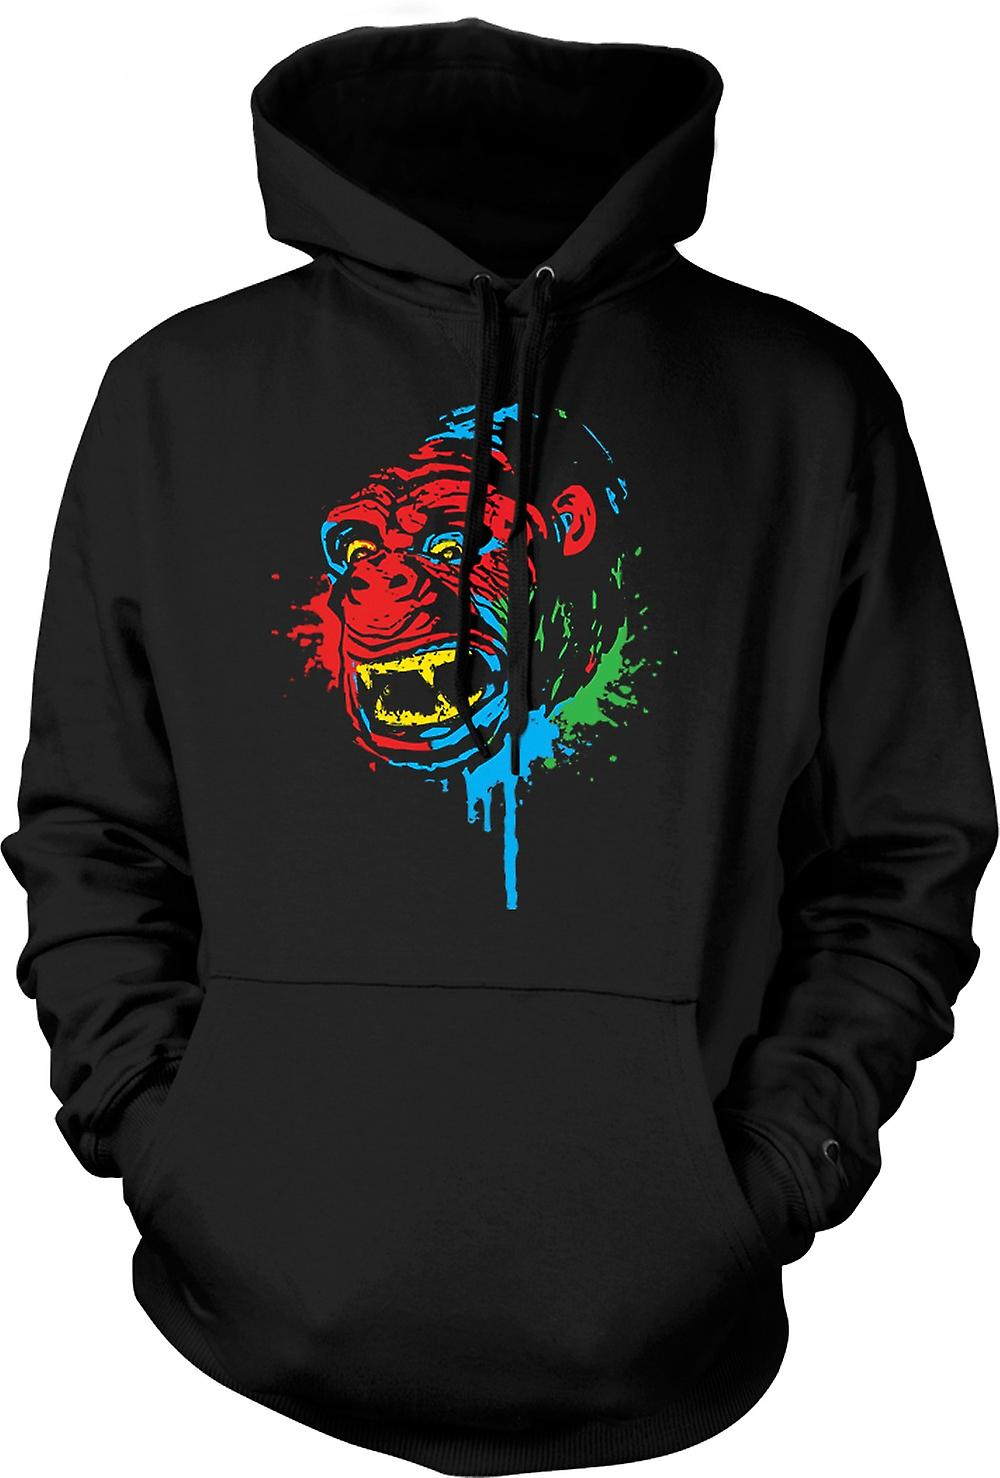 Kinder Hoodie - Pop-Art - Affen Gorilla - cooles Design